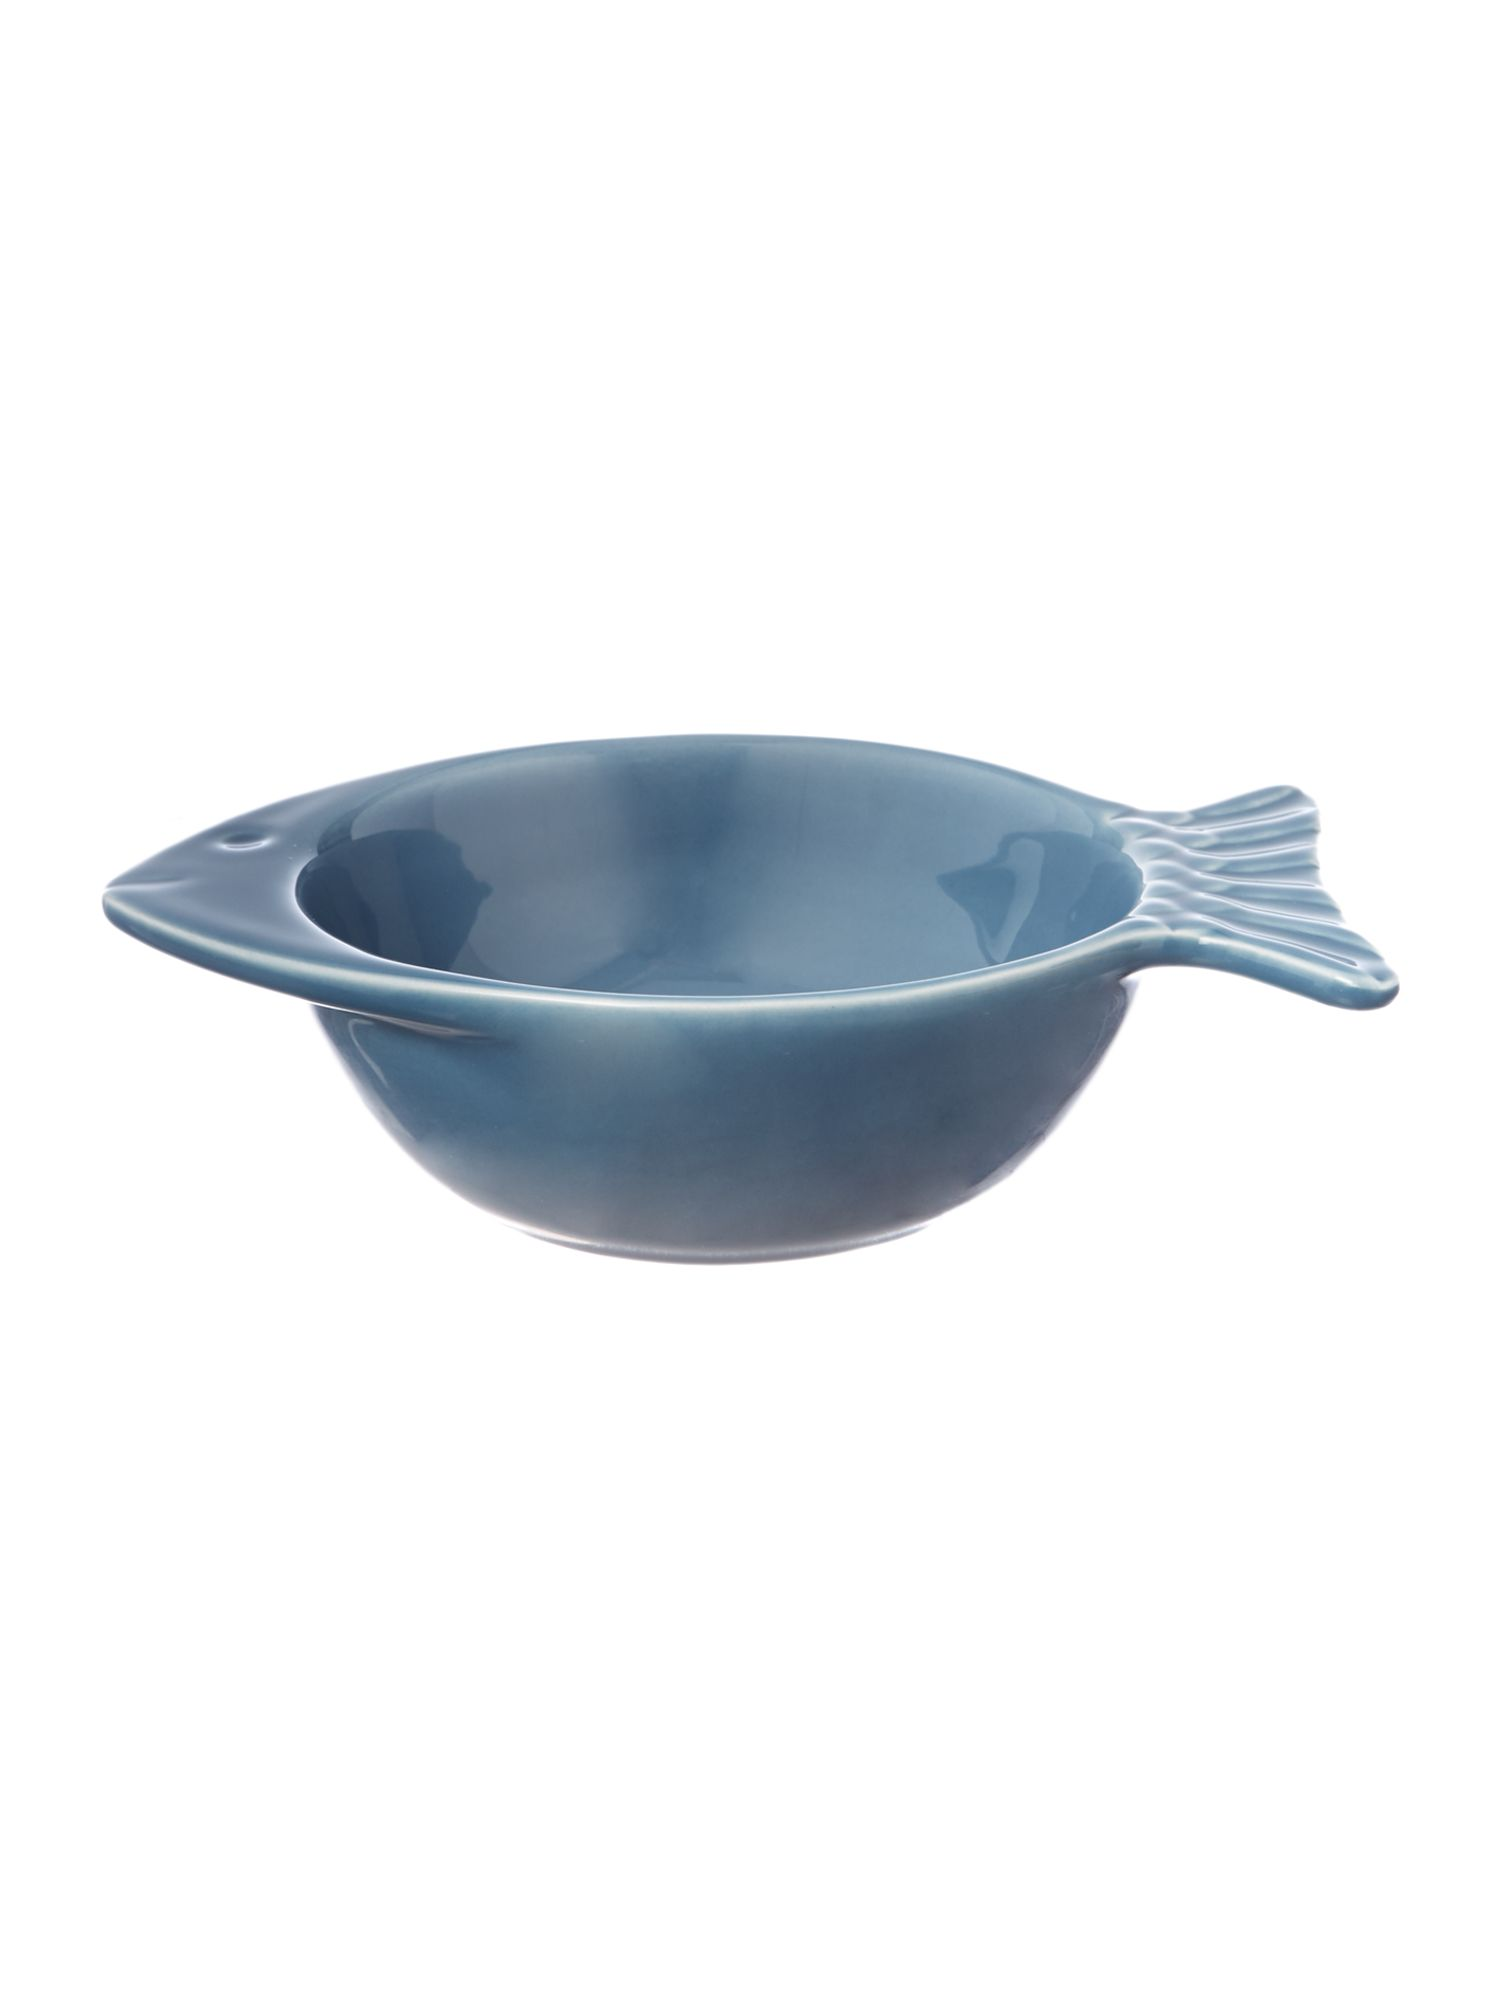 Large fish bowl